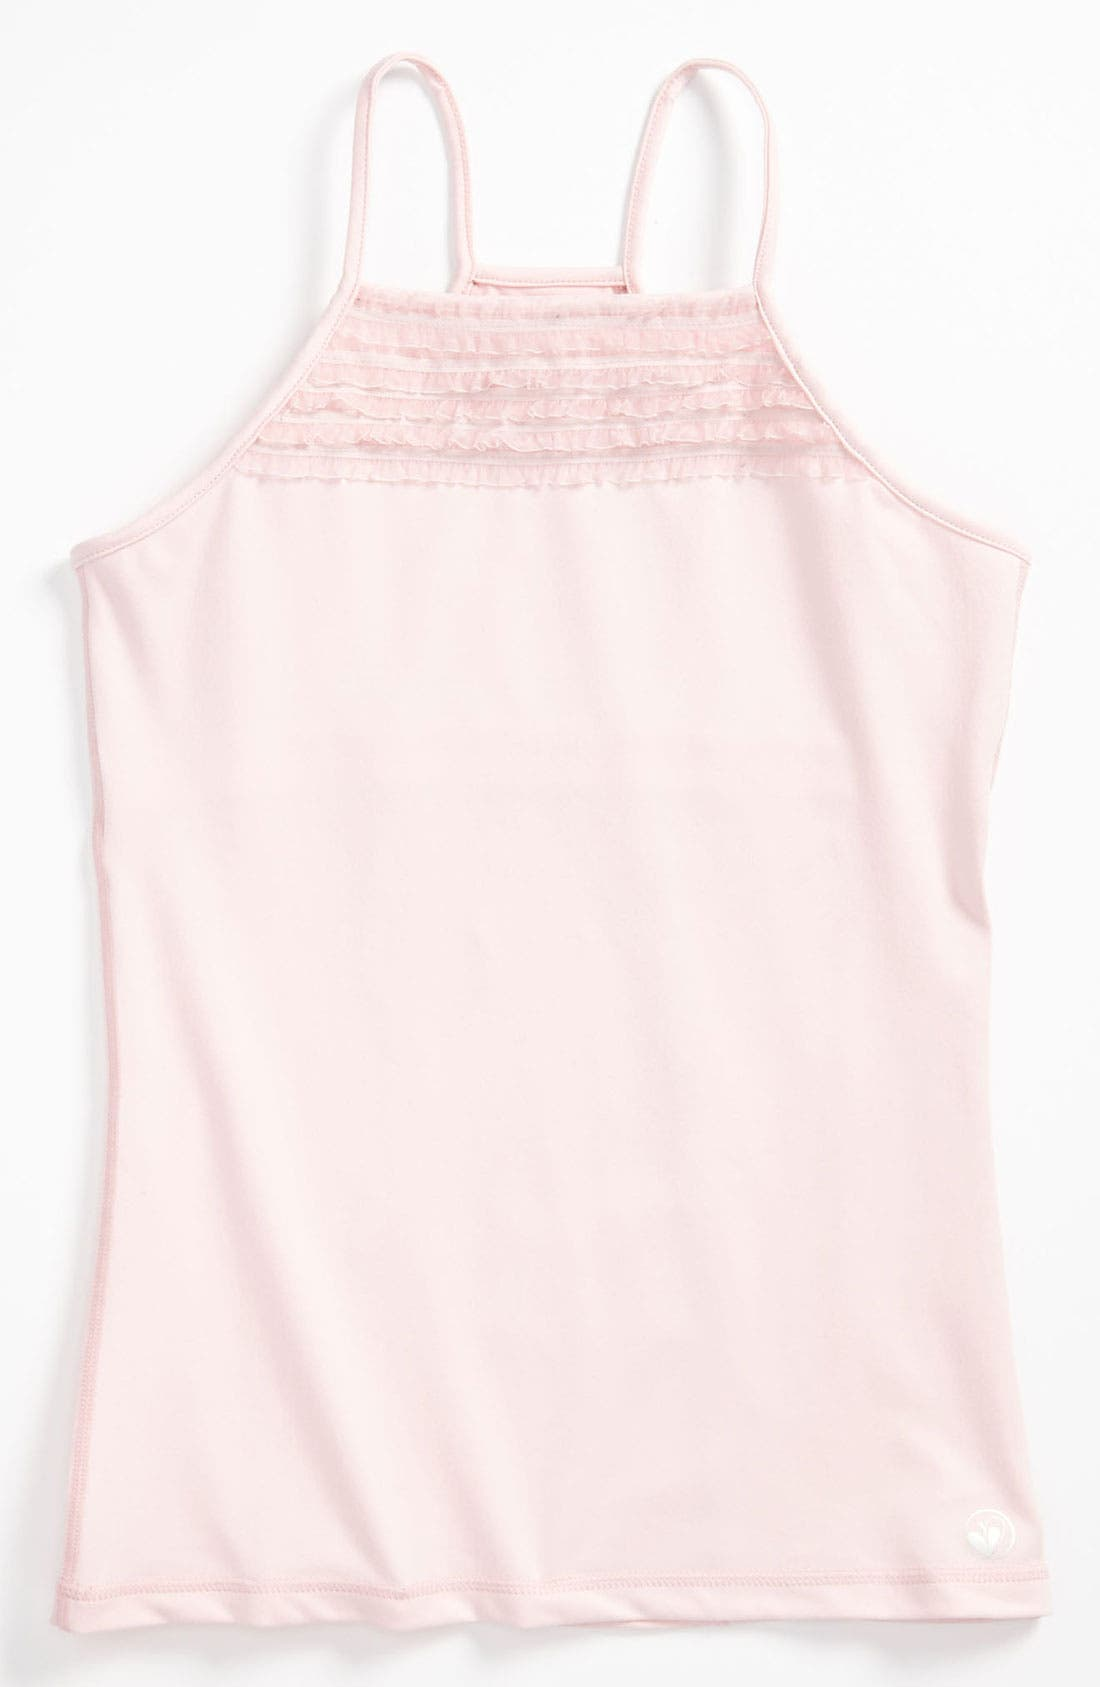 Main Image - Limeapple Dance Ruffle Tank Top (Big Girls)